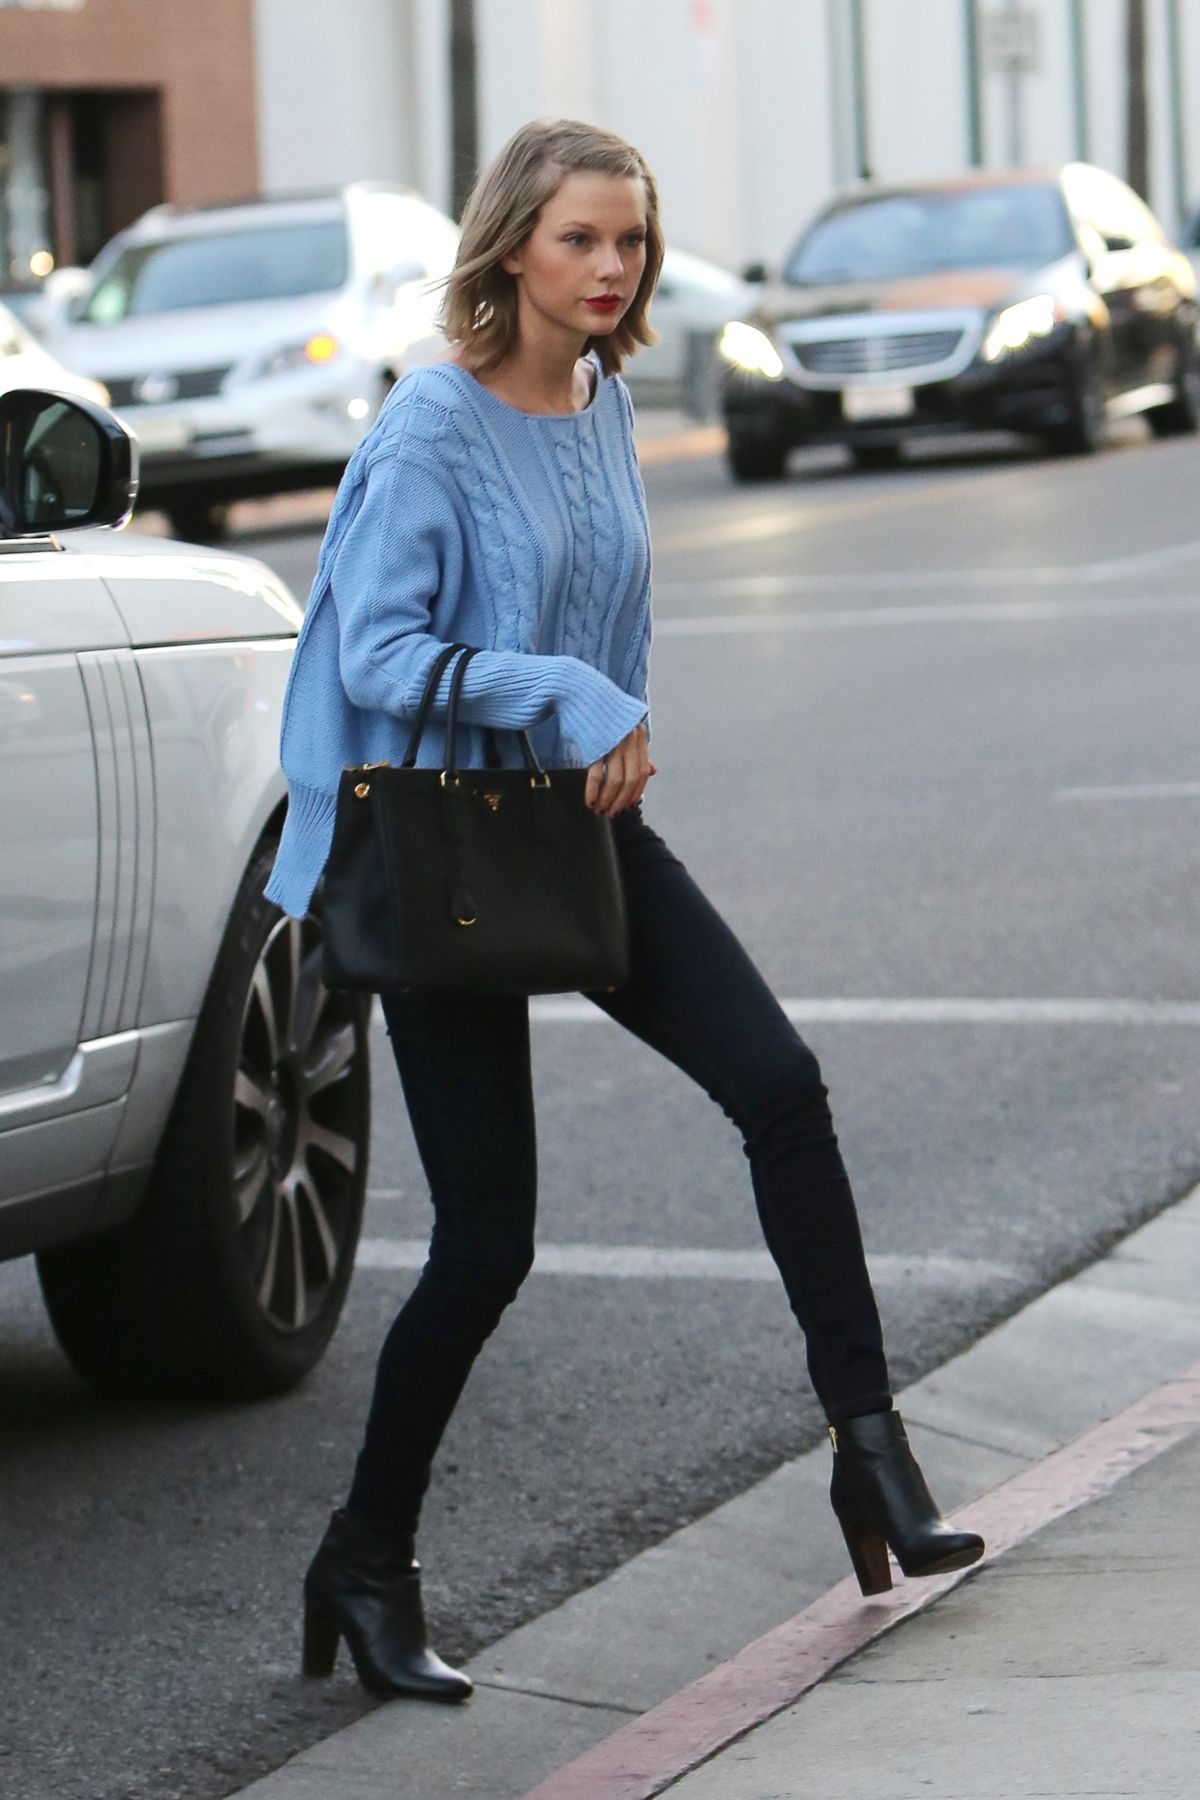 taylor swift at voila nail salon in beverly hills celebzz. Black Bedroom Furniture Sets. Home Design Ideas